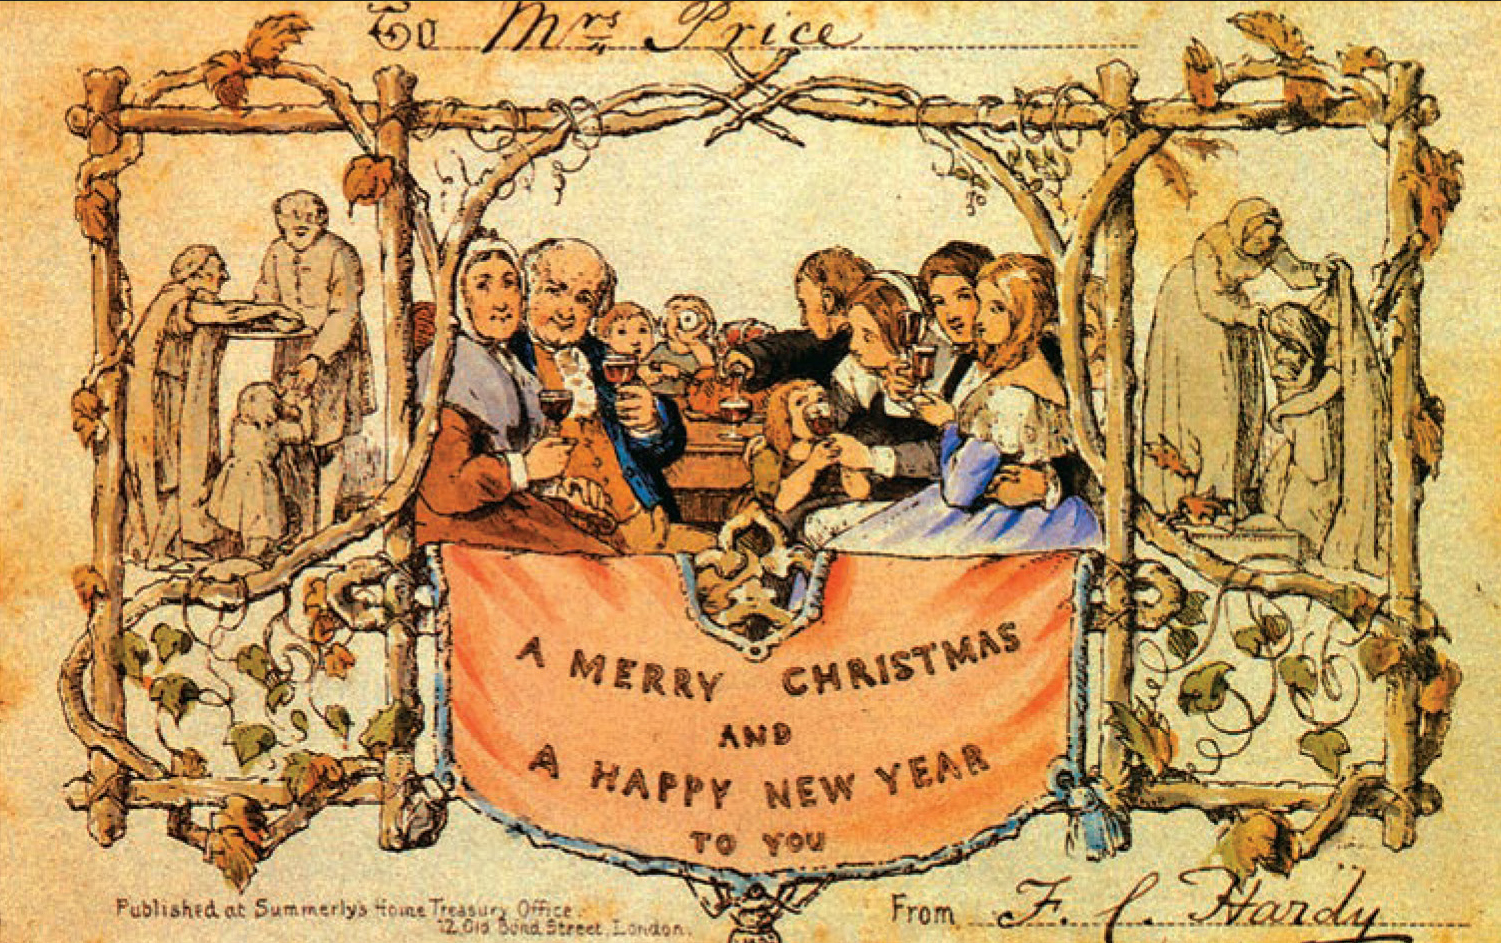 From the AP Archives: The First Christmas Card